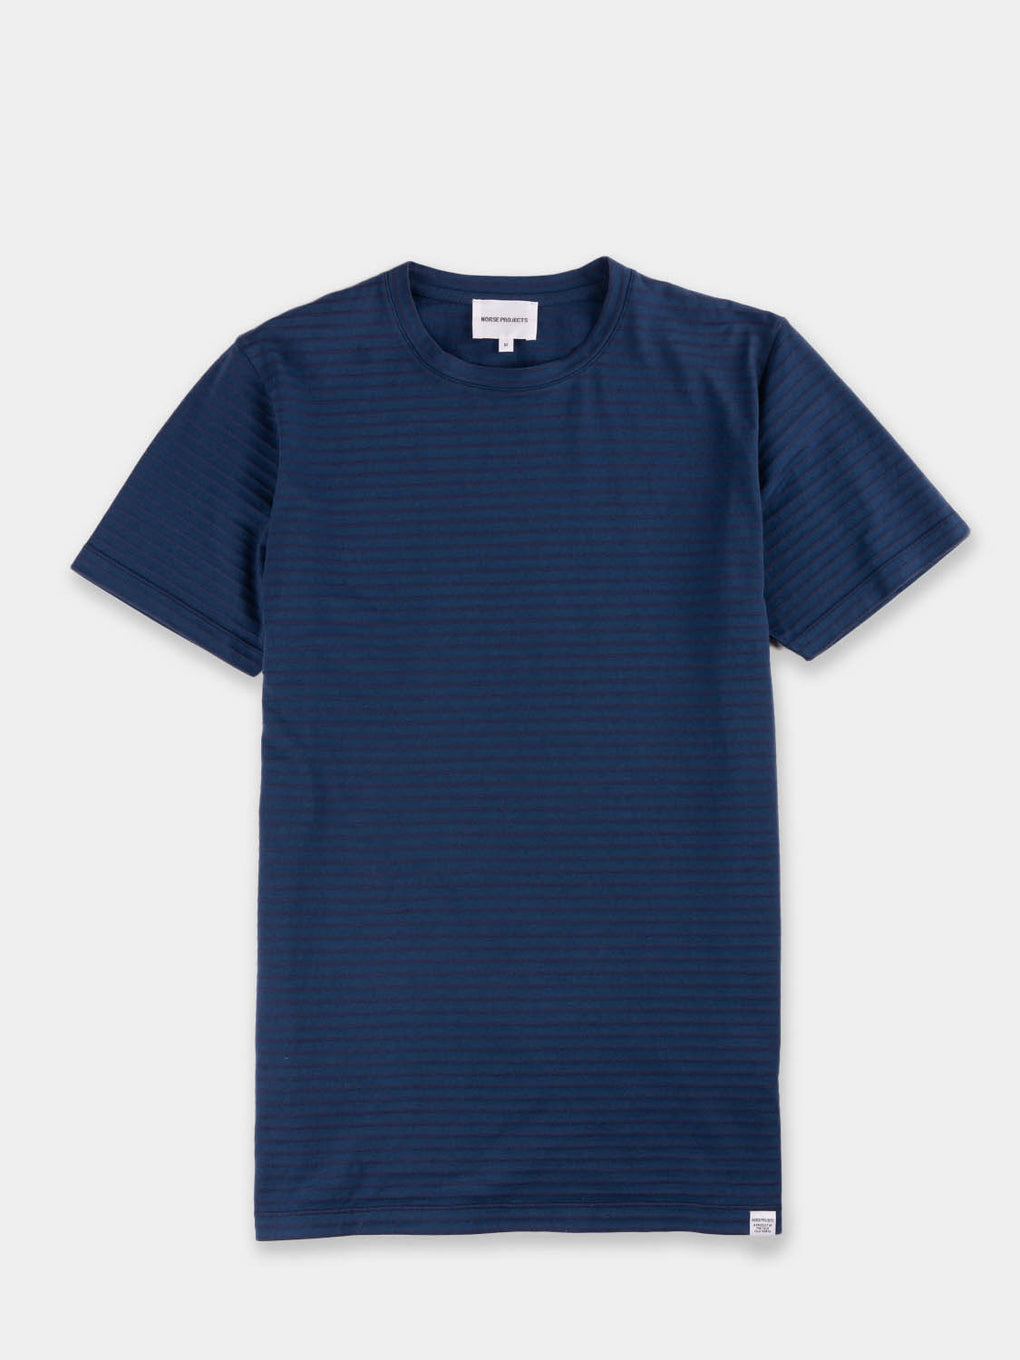 mens premium tshirt with blue stripes from Norse Projects